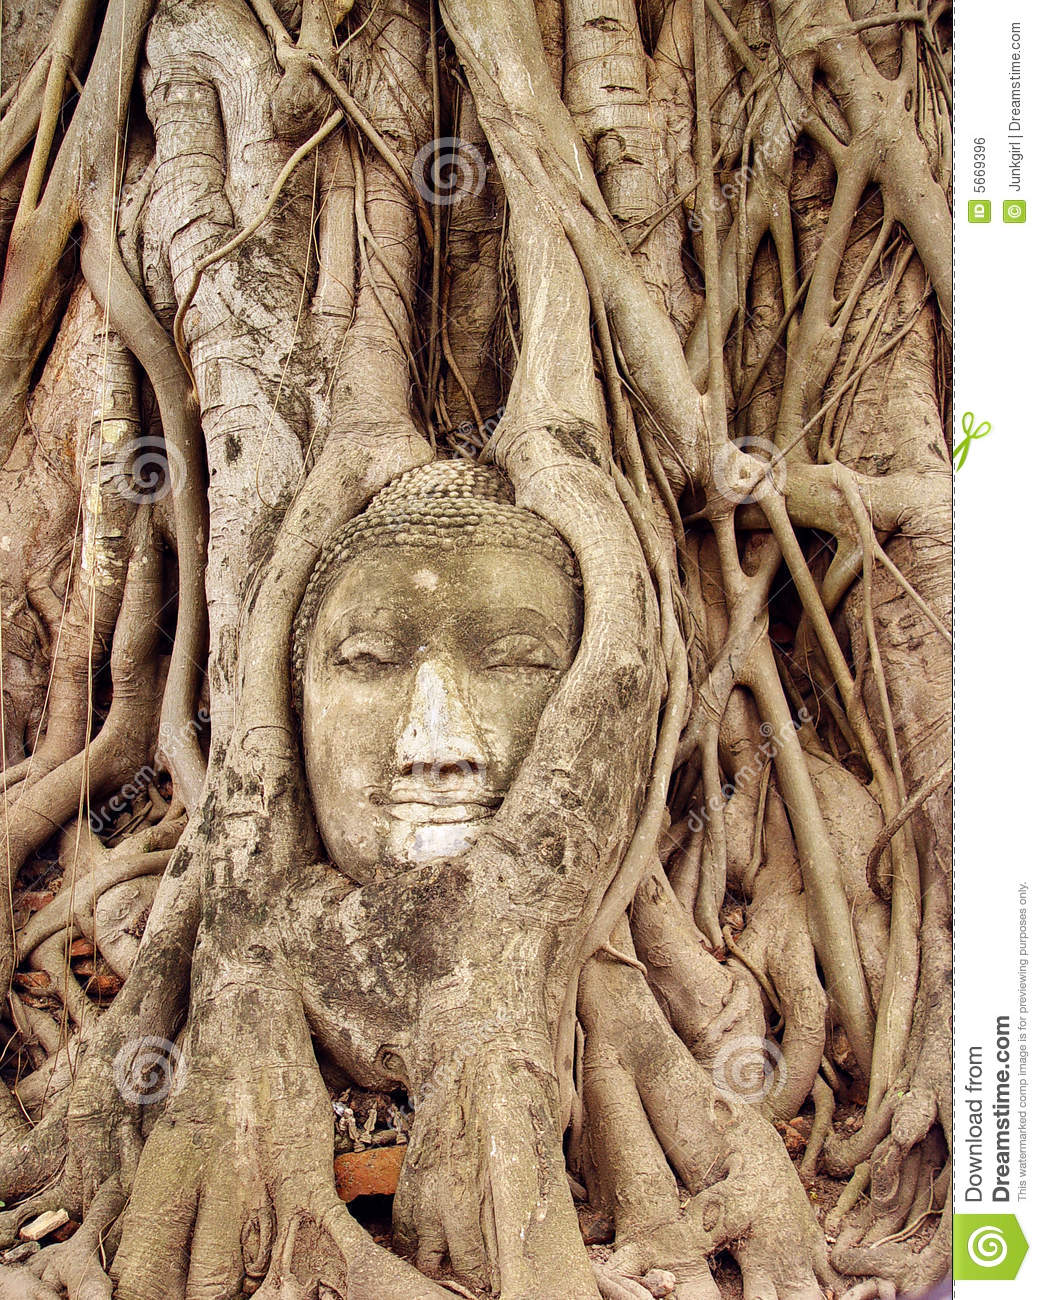 Face Carved In Tree Royalty Free Stock Image - Image: 5669396